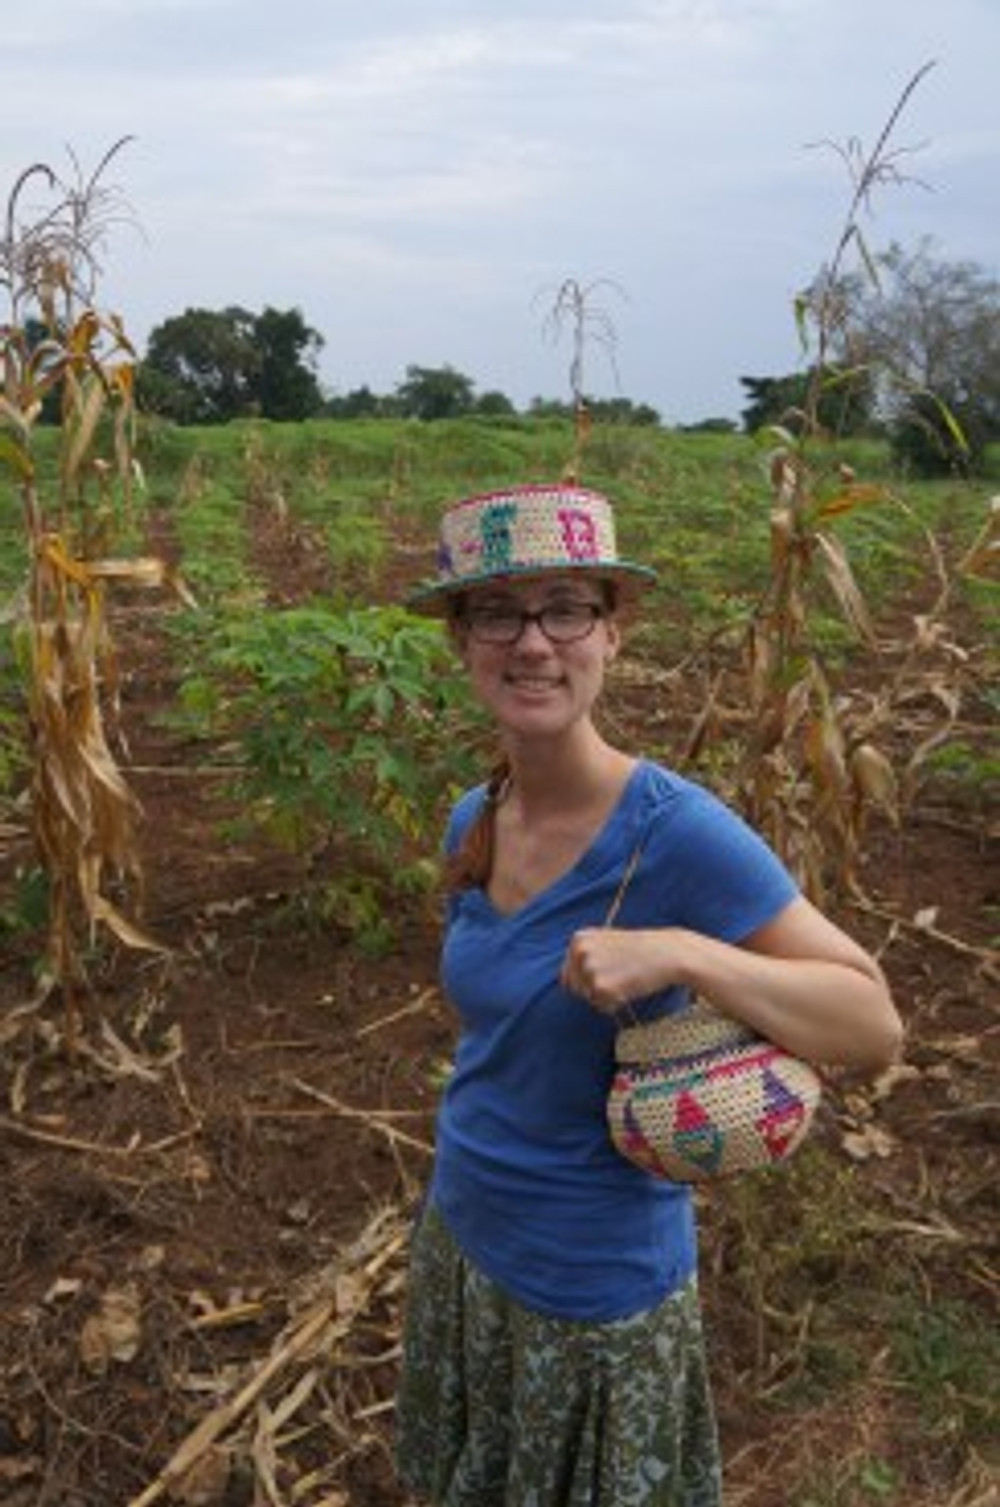 Tanya shows off a basket and hat woven by one of the Small Business Fund groups. I'm grateful for the generosity of our grant partners!